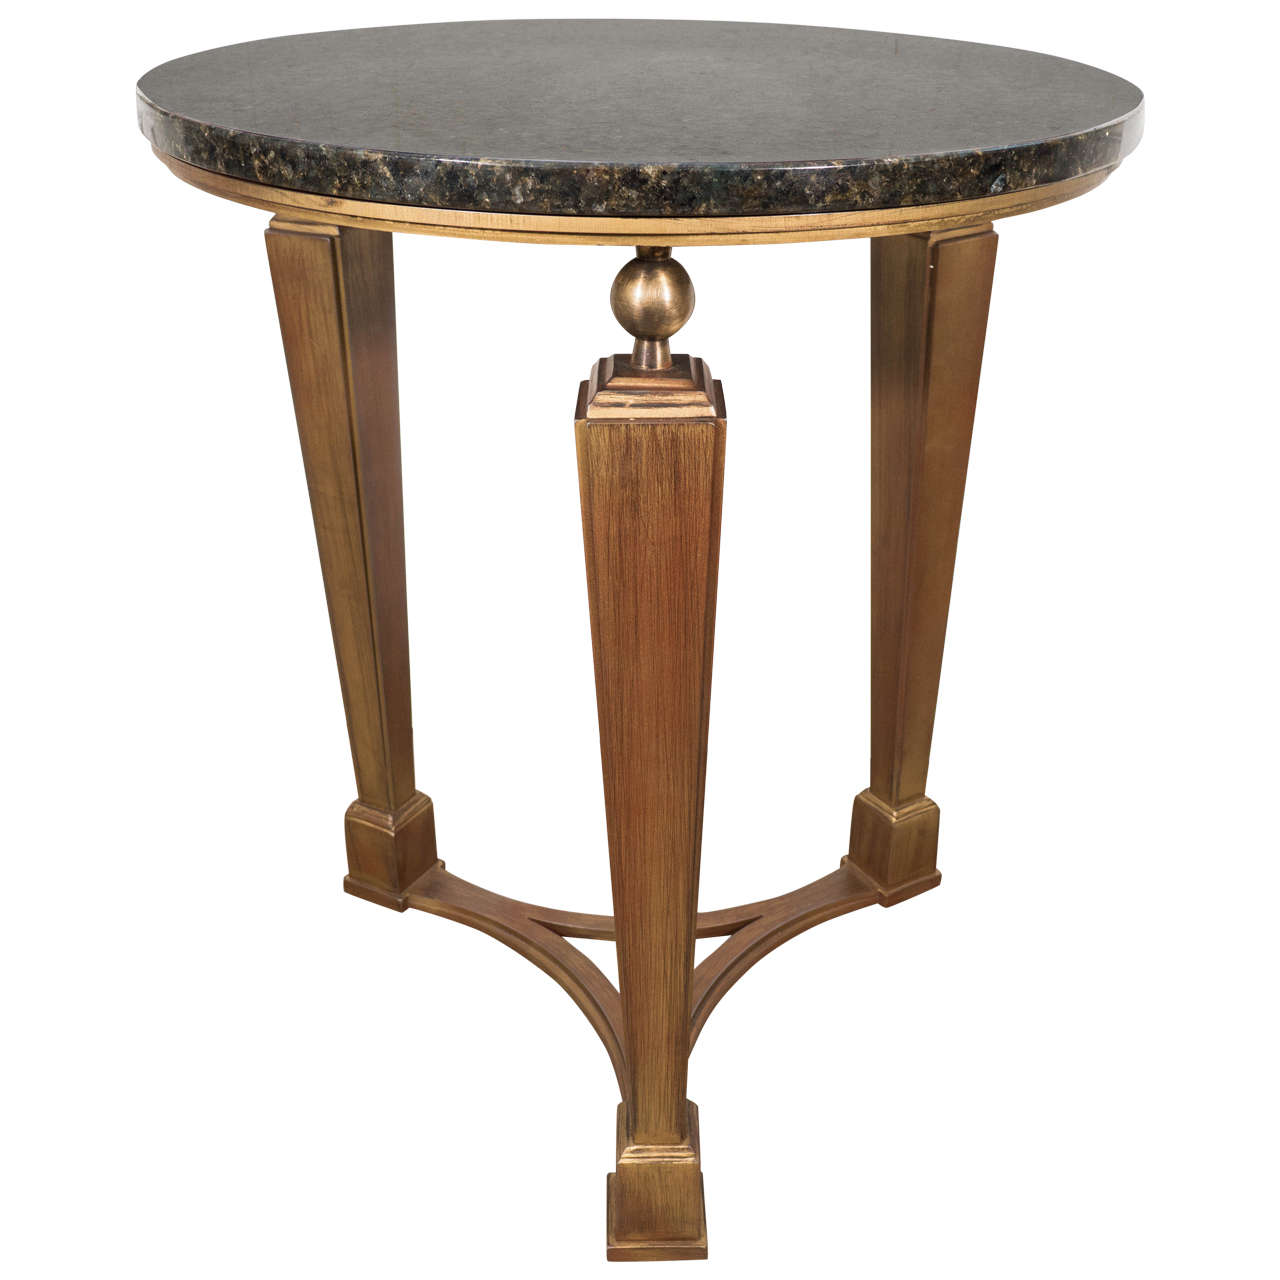 Circular Art Deco Inspired Three Legged Metal Side Table